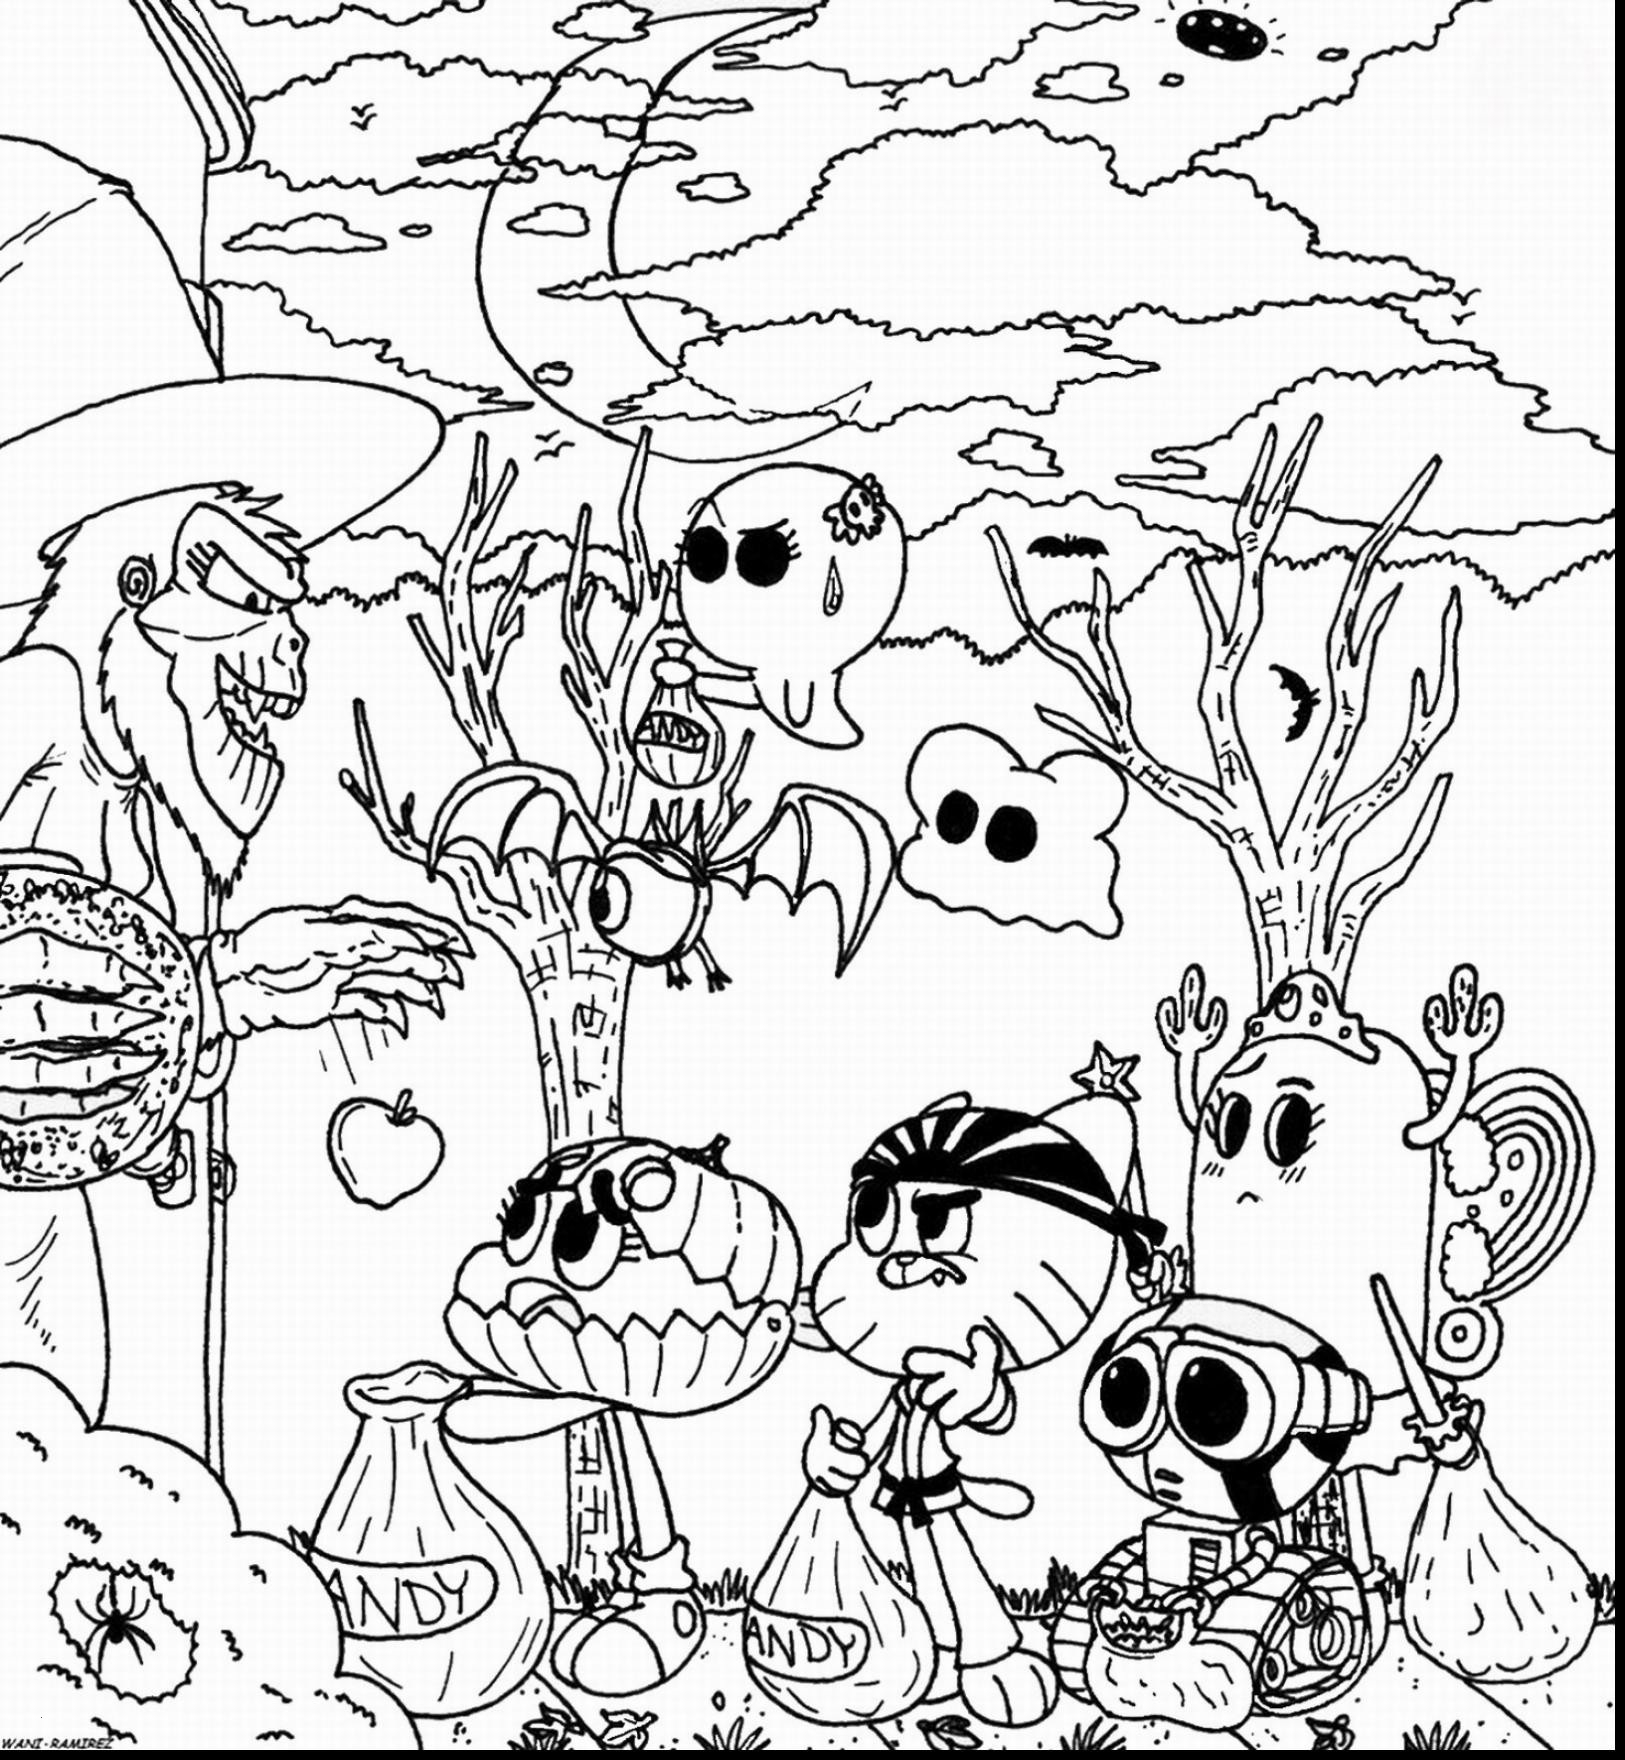 Amazing World Of Gumball Coloring Pages to Print  Printable 11f - Free For Children